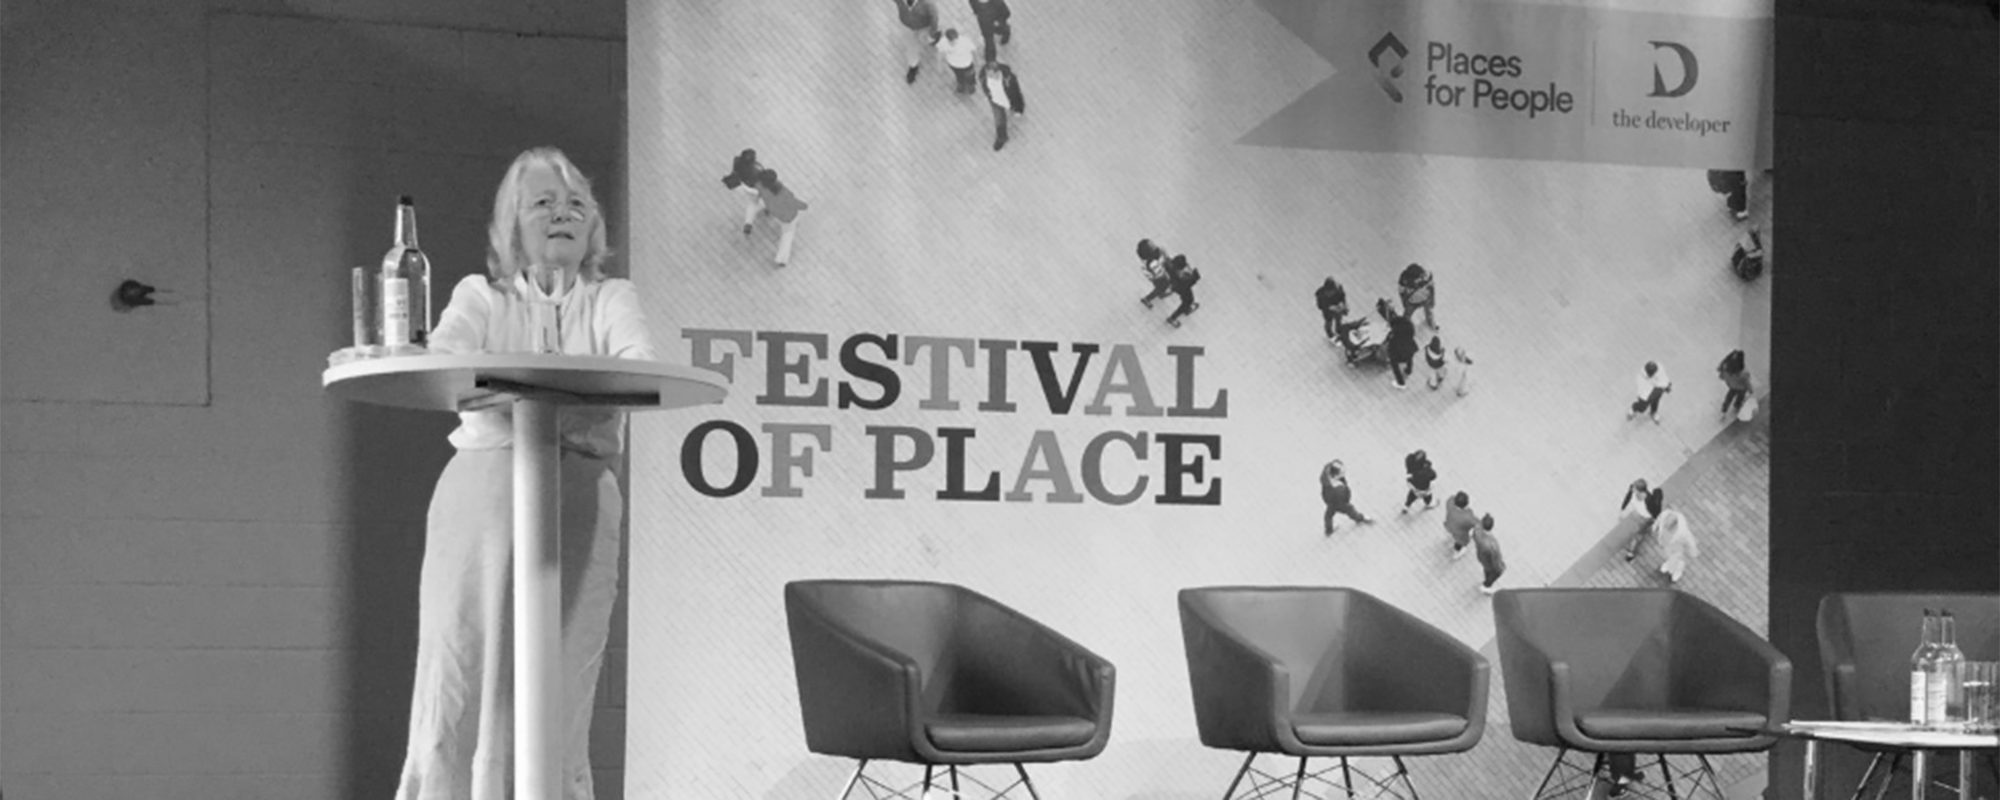 Anne Power at the Festival of Place 2019